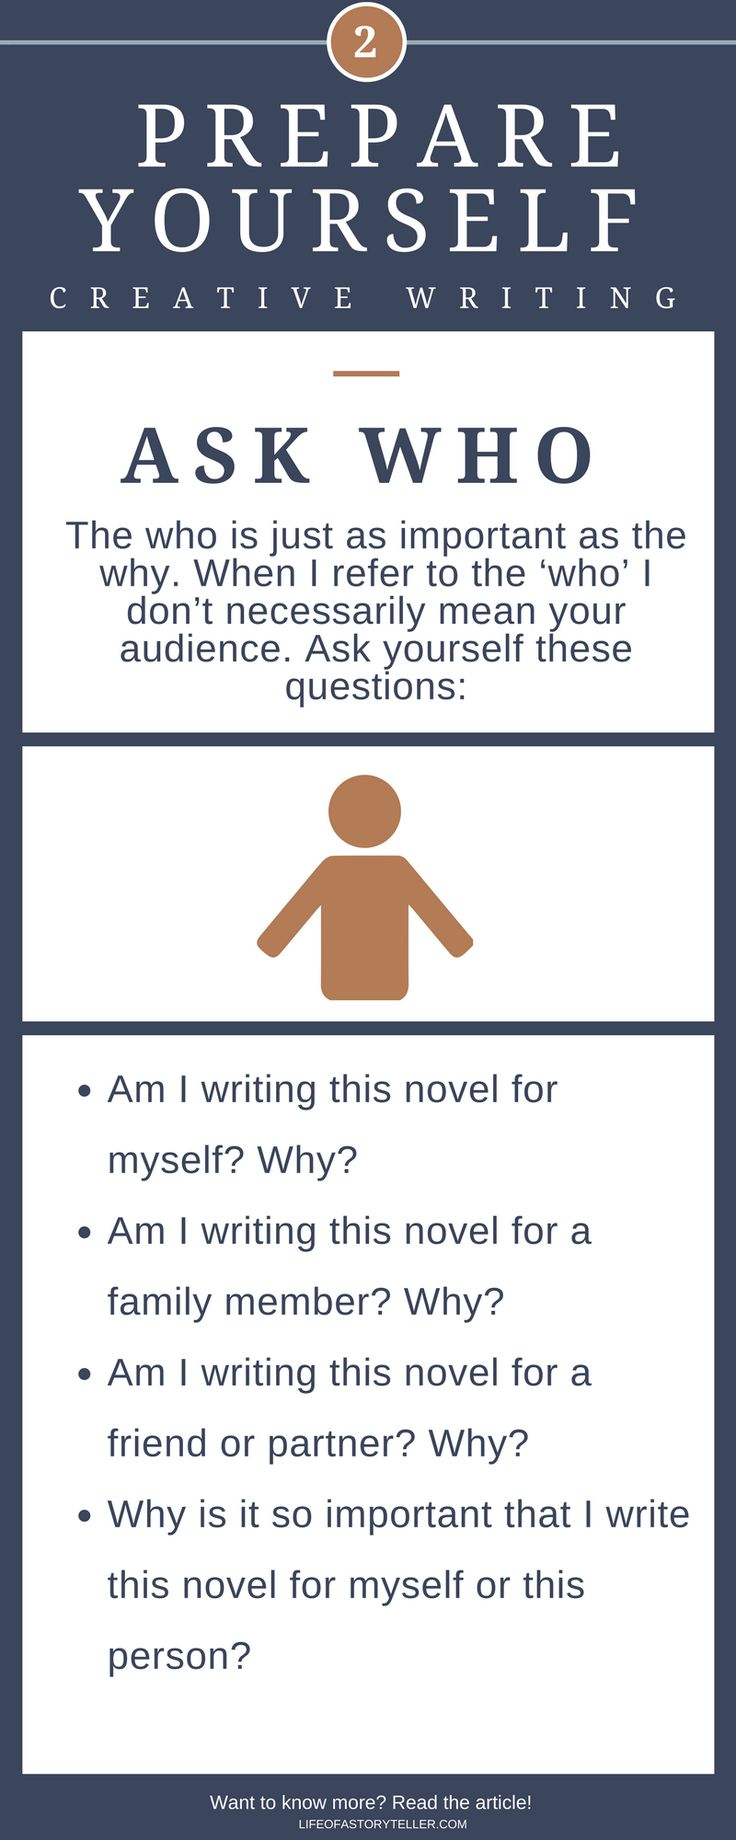 Writing Advice: Tips For New Fiction Authors